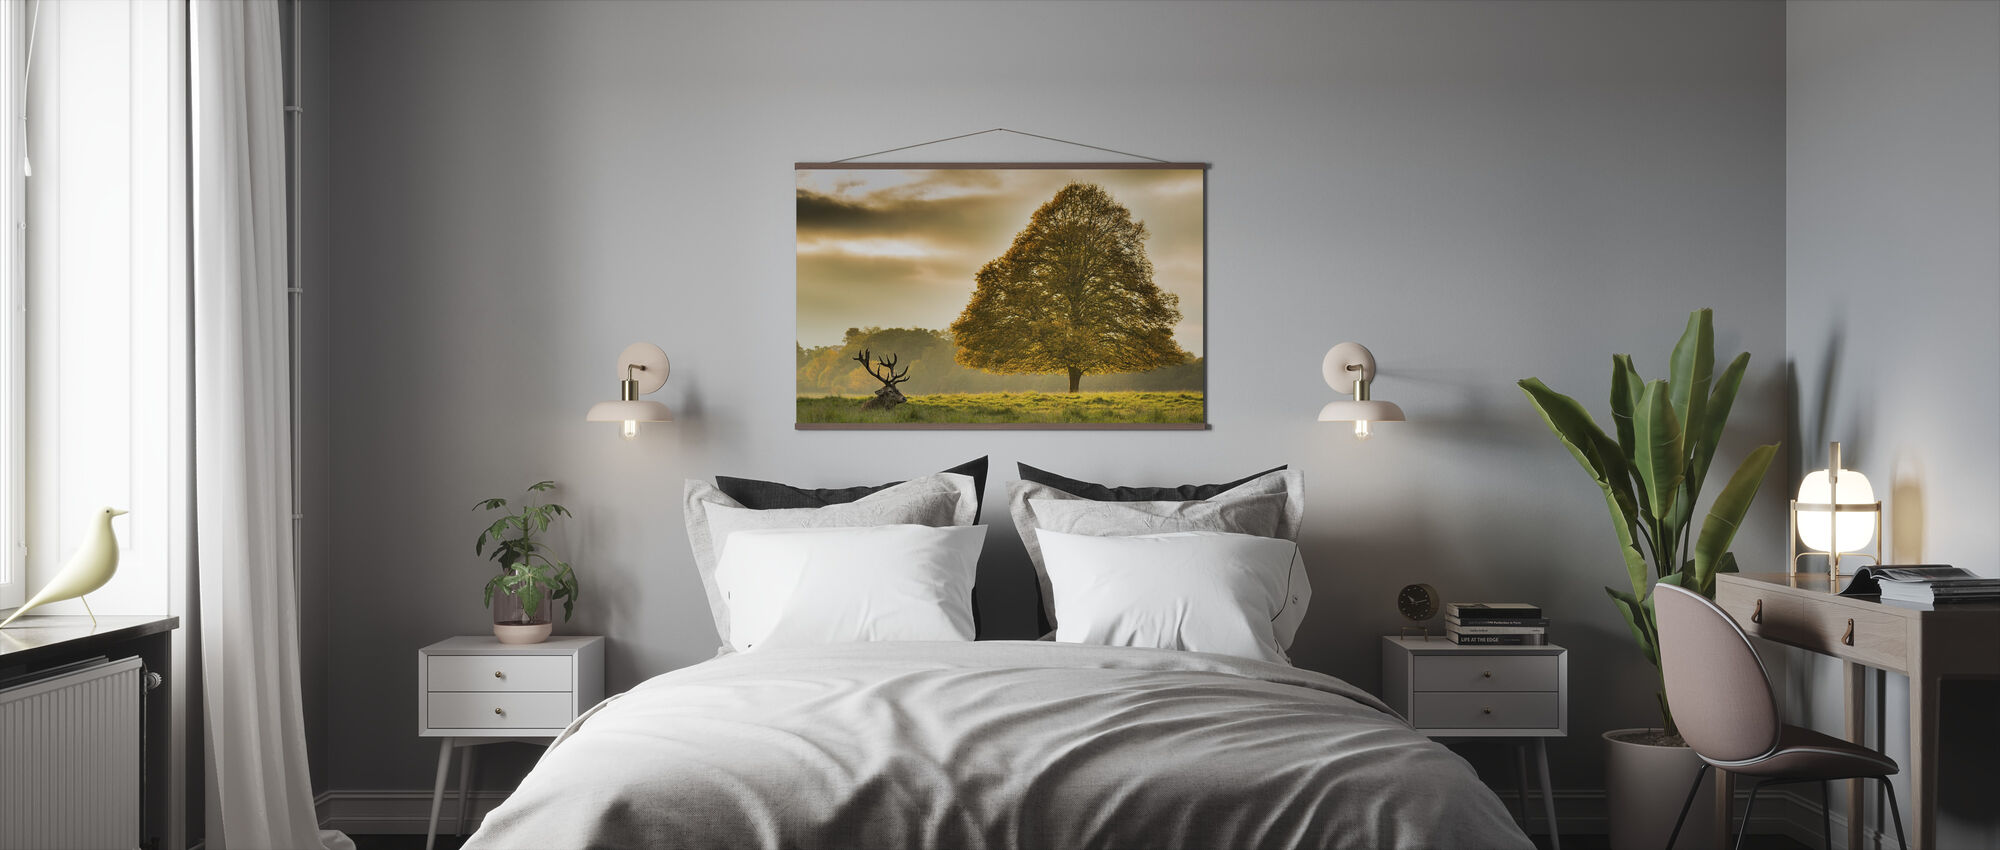 Deer and the Tree - Poster - Bedroom